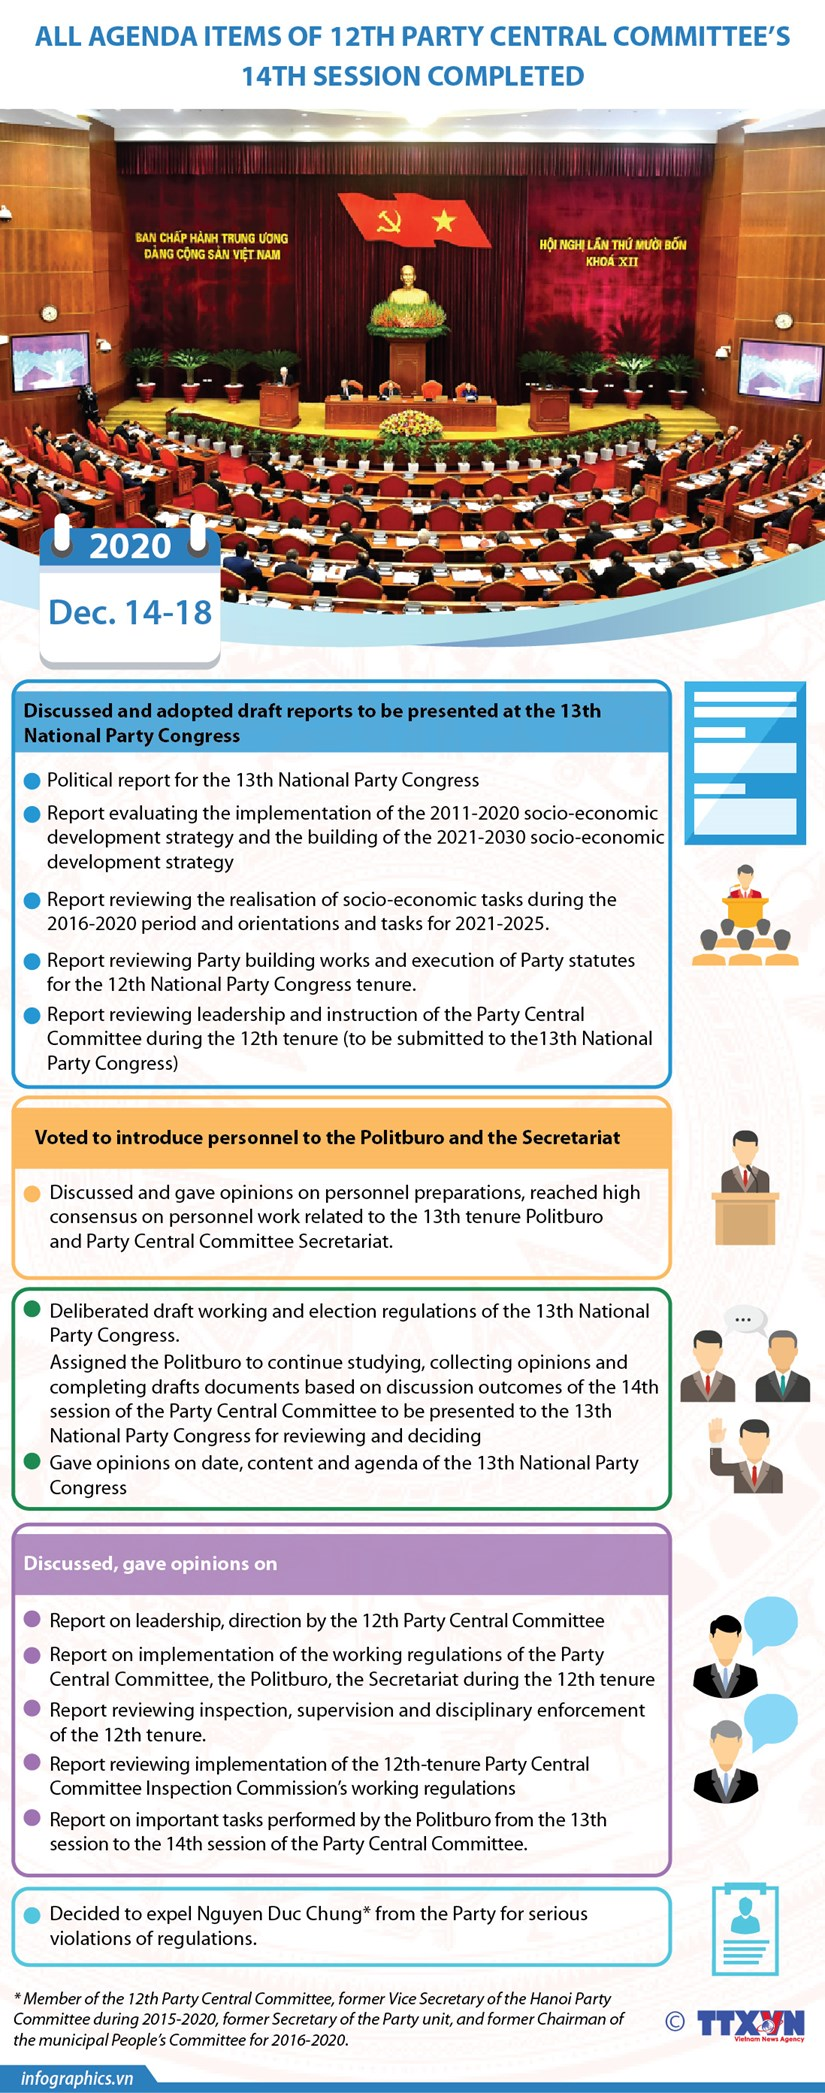 All agenda items of 12th Party Central Committee's 14th session completed hinh anh 1